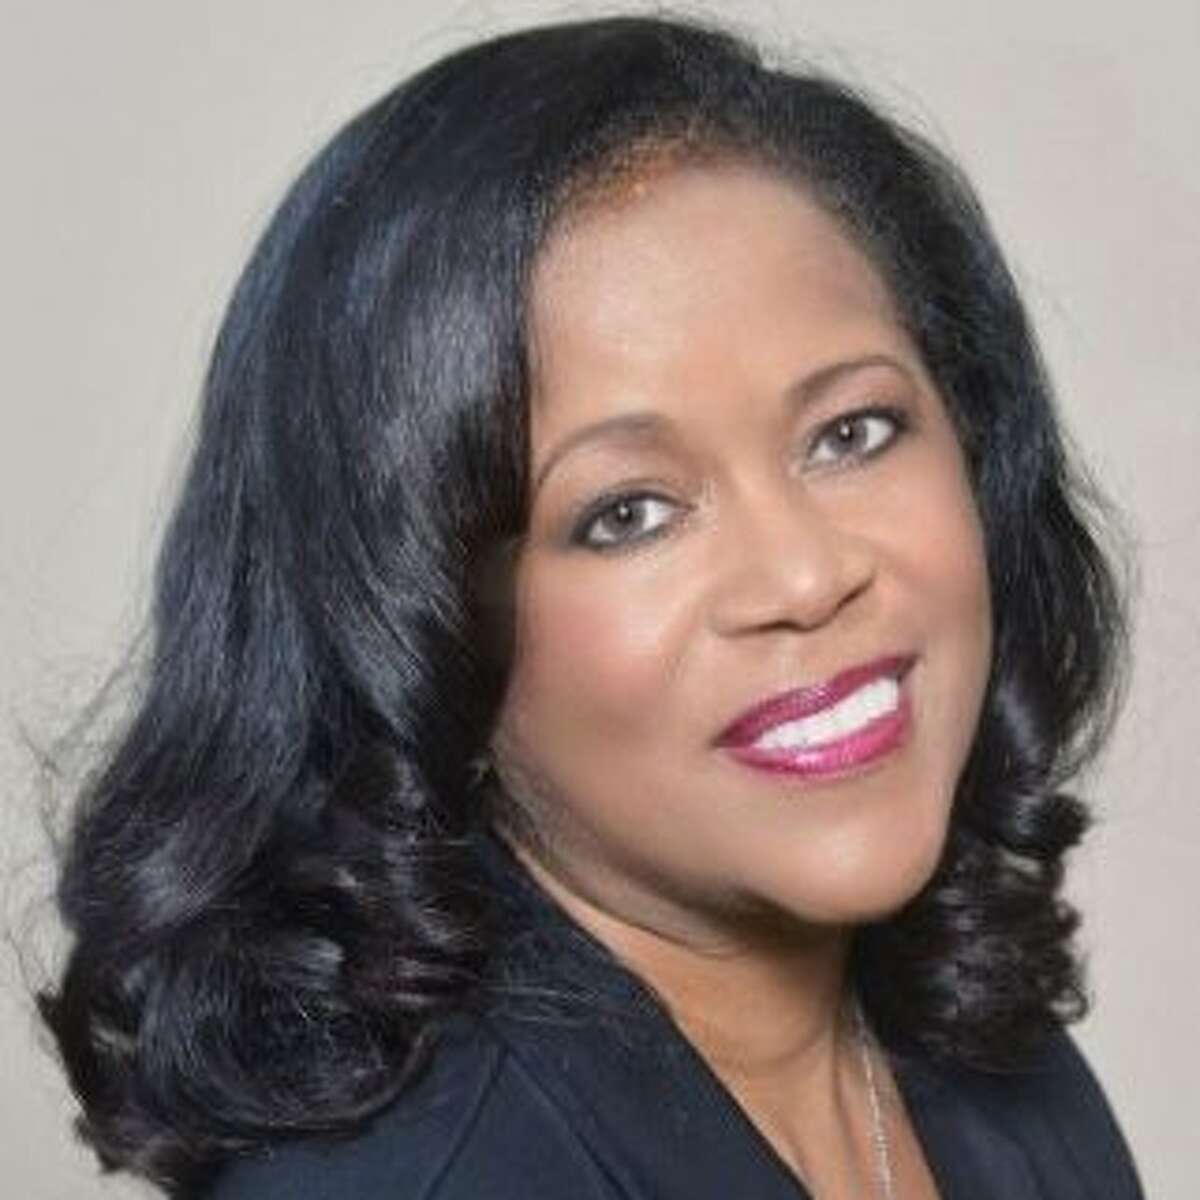 Adrienne Bell is seeking election to the new at-large Position 6 seat on Pearland City Council.